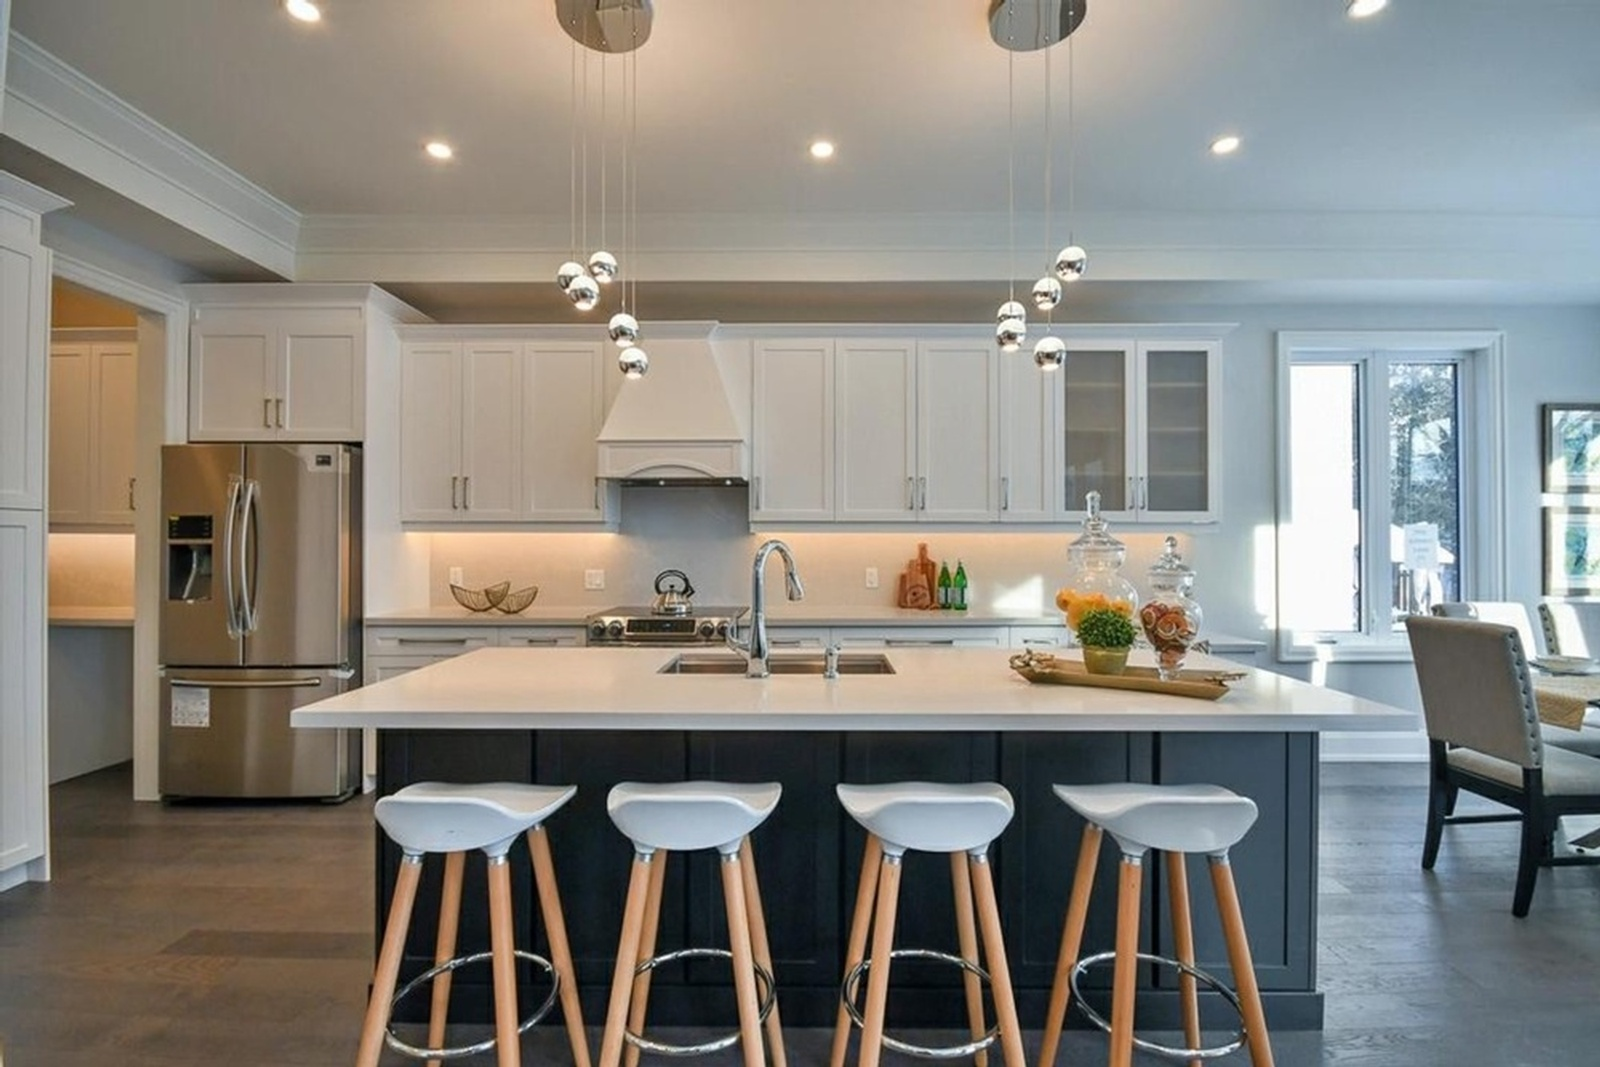 Kitchen Counter Stools - Home Staging services by Impressive Staging - Home Staging Company Oshawa ON